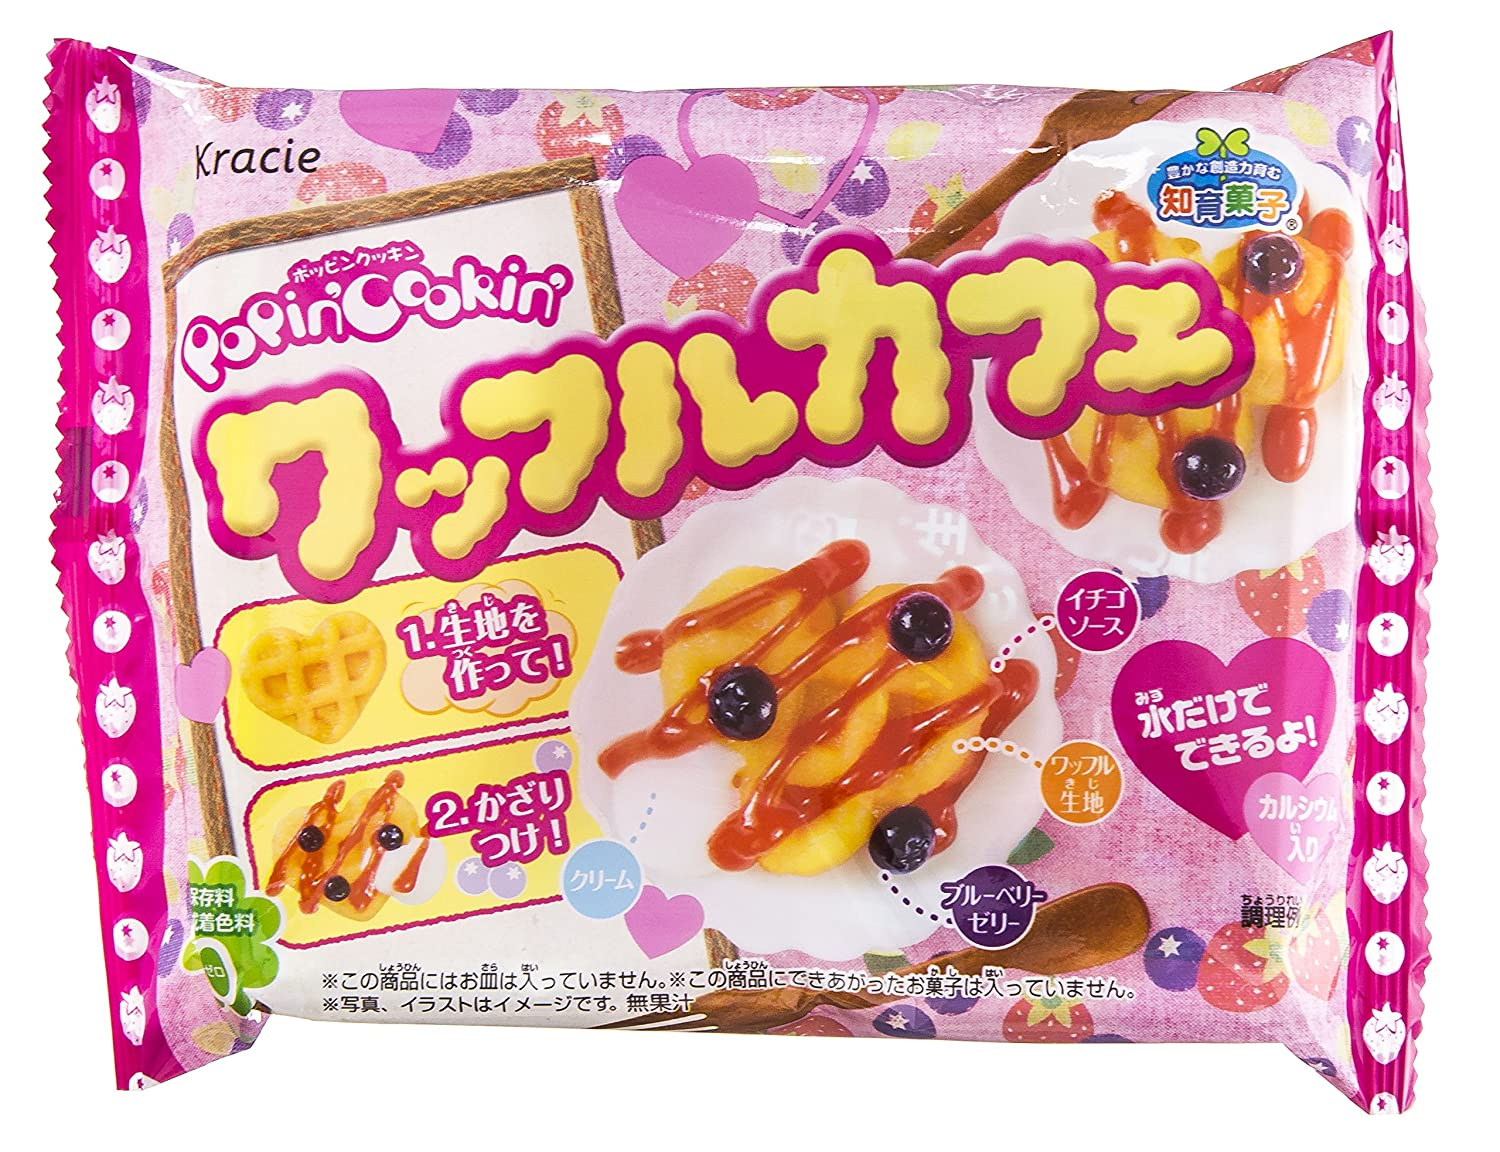 Popin cookin amazon - Amazon Com New Kracie Popin Cookin Waffle Cafe Diy Happy Kitchen Kit Gummy Candy Grocery Gourmet Food